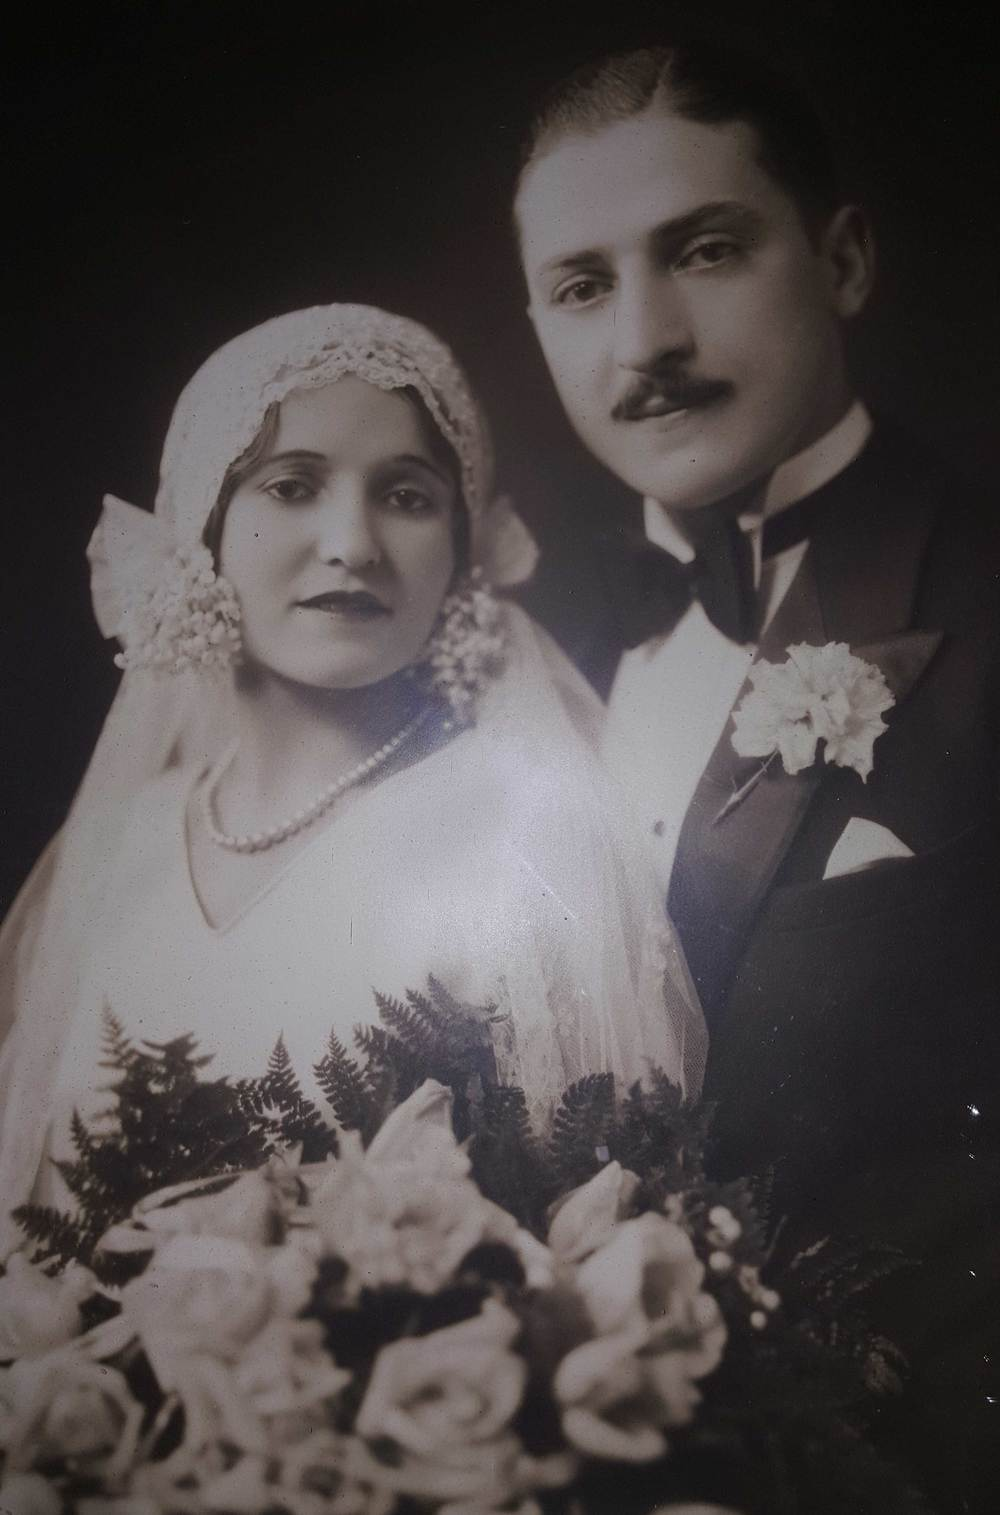 Maurice & Rose Wohl - 1920